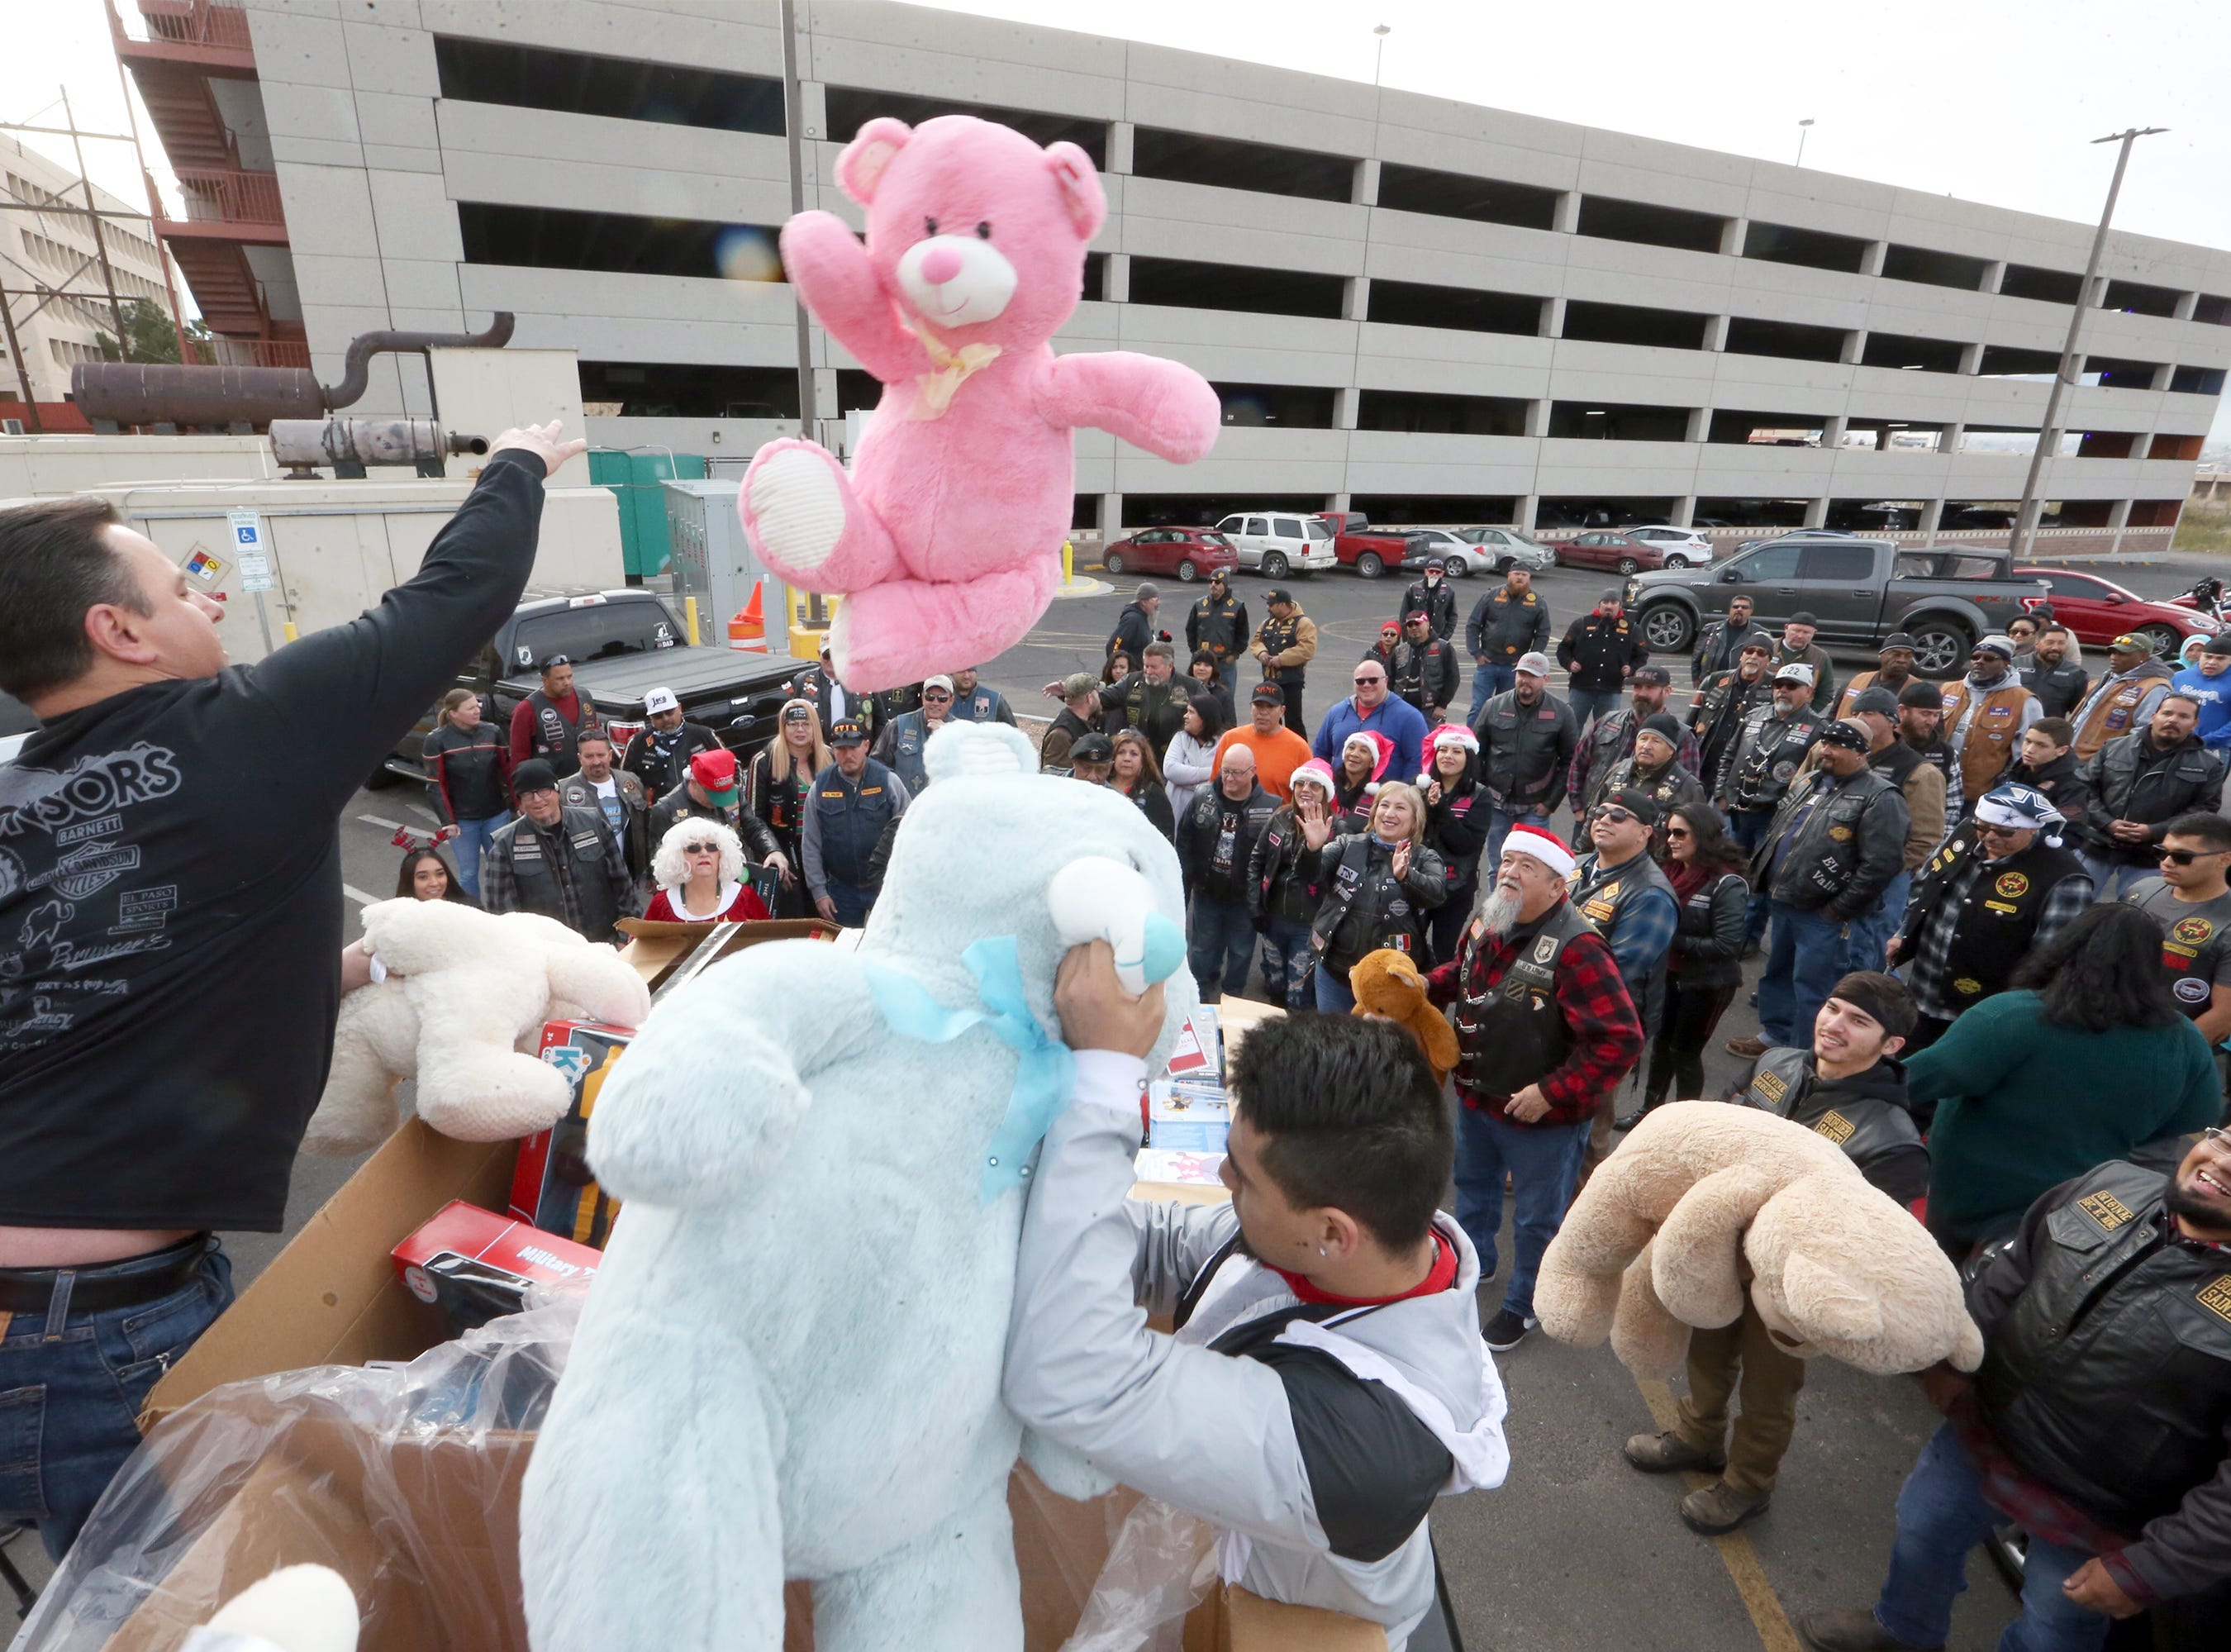 A pink stuffed bear flies throught he air as a truck full of toys is unloaded during the 36th annual Toy Run/Parade toy delivery put on by the El Paso Motorcycle Coalition at Providence Children's Hospital on Christmas Day Tuesday.